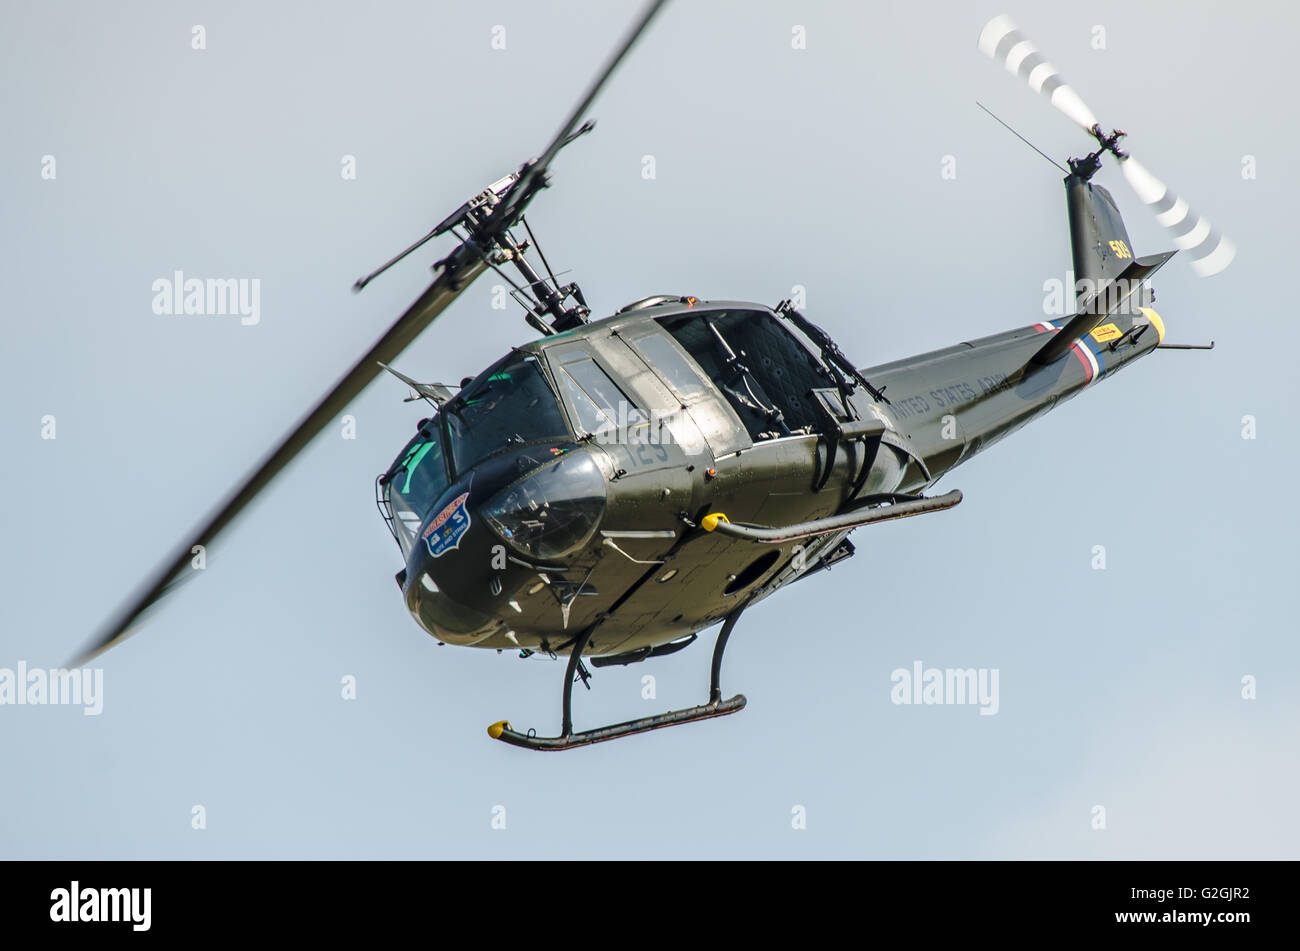 bell-uh-1-or-huey-is-one-of-the-most-famous-helicopters-in-the-world-G2GJR2.jpg